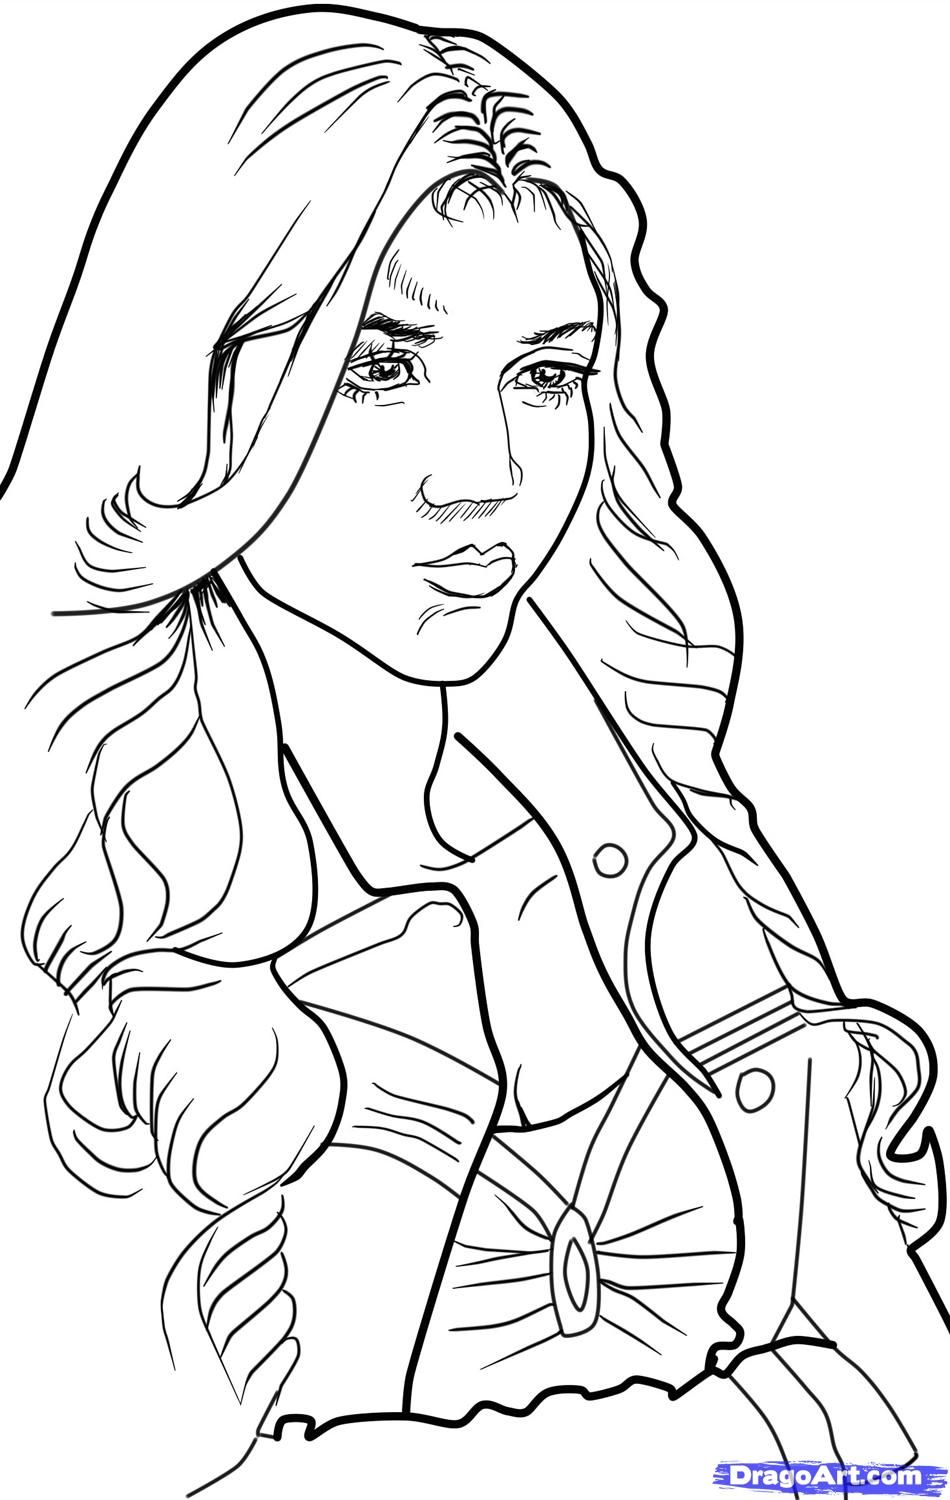 Vampire Diaries Coloring Pages Horse Coloring Pages Coloring Pages Detailed Coloring Pages